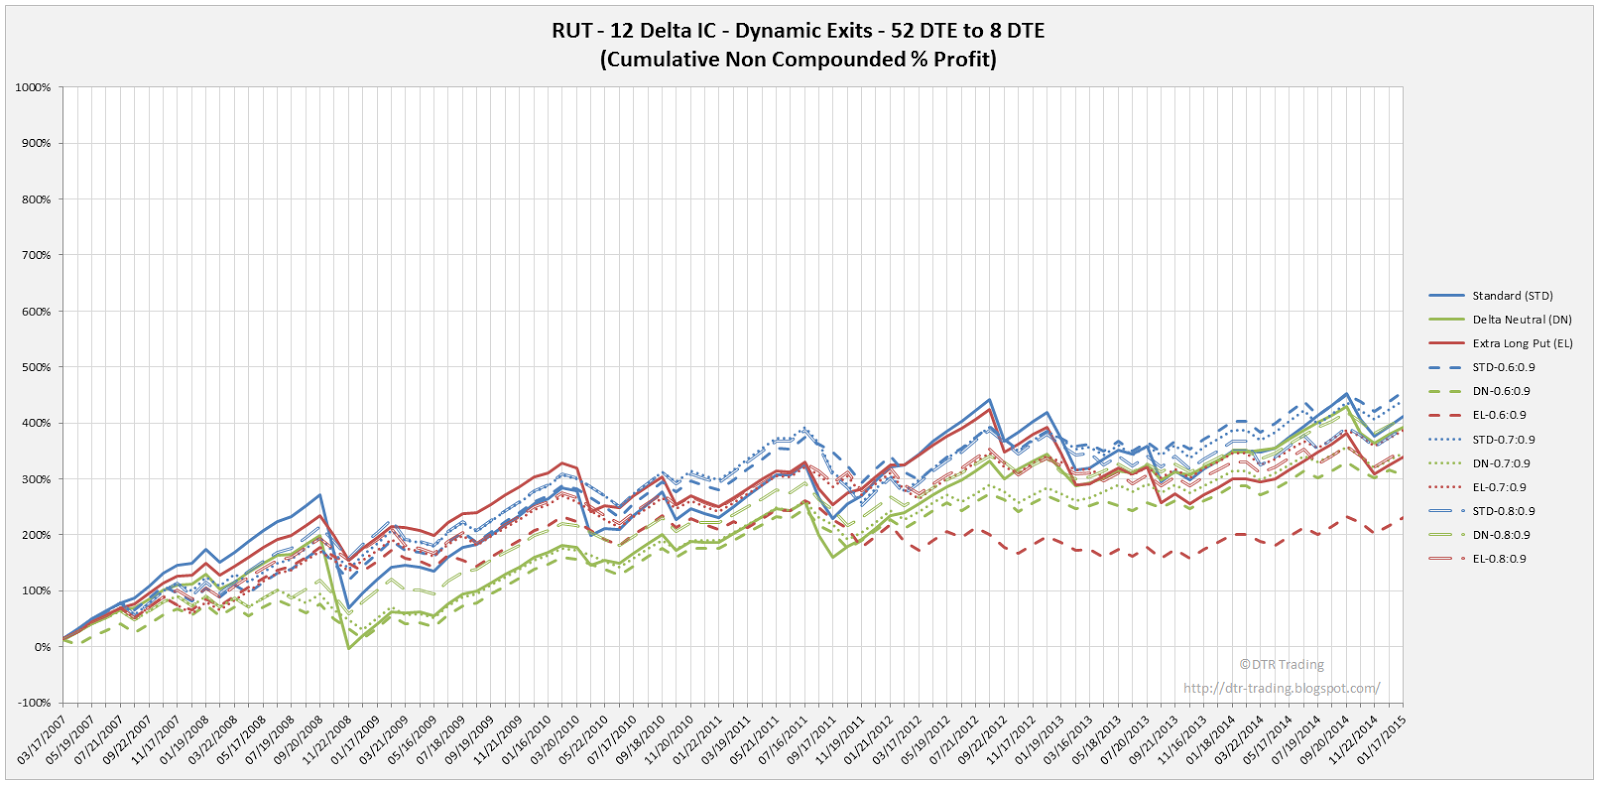 Iron Condor Dynamic Exit Equity Curves RUT 52 DTE 12 Delta Risk:Reward Versions